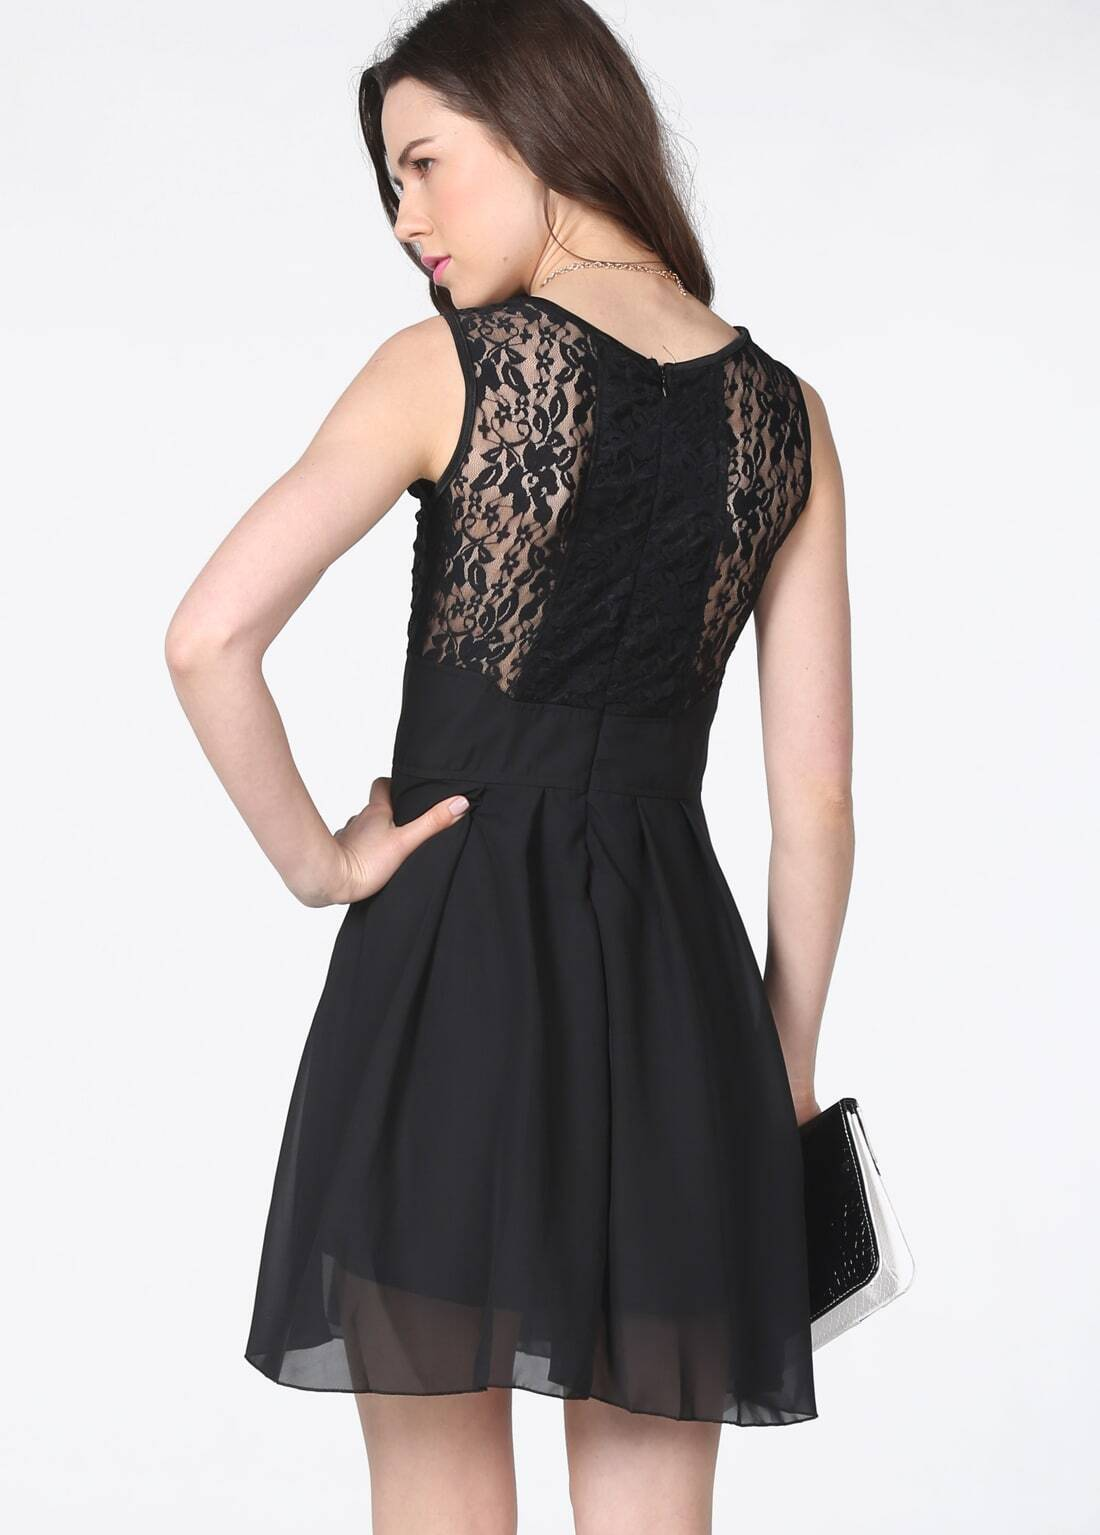 Black Lace Bandeau Dress Black Sleeveless Lace Bandeau